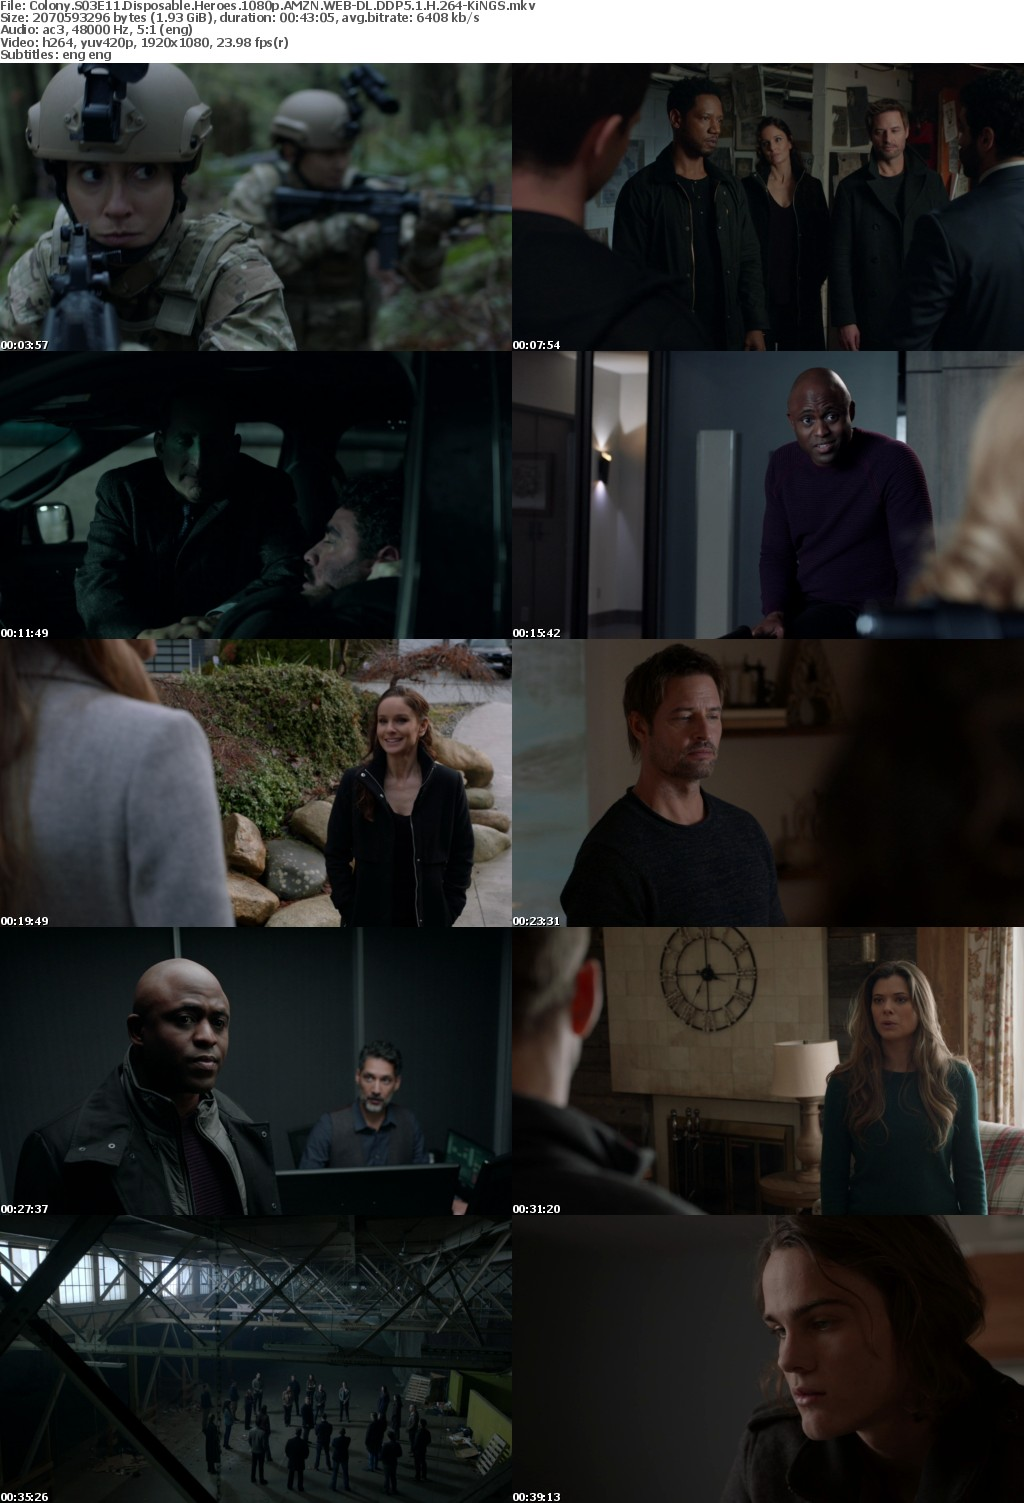 Colony S03E11 Disposable Heroes 1080p AMZN WEB-DL DDP5 1 H 264-KiNGS